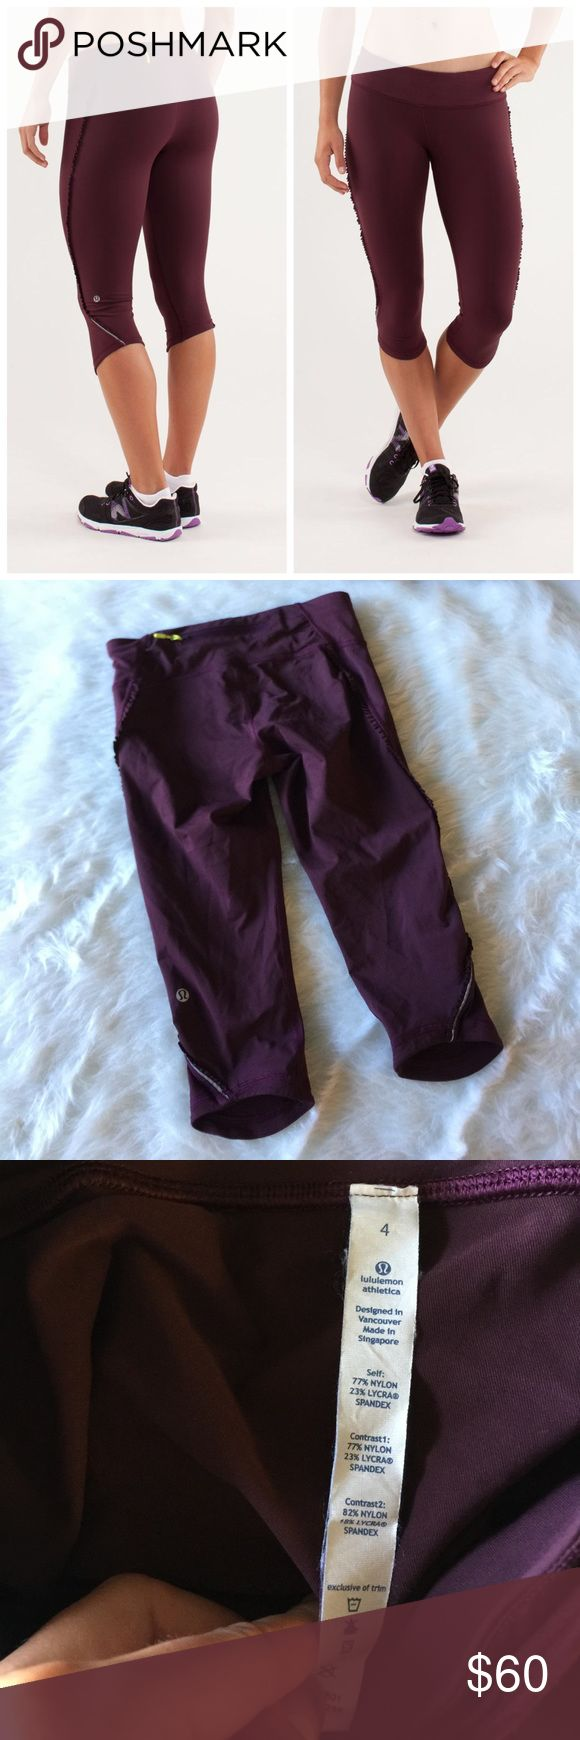 NWOT Lululemon Run: Fast and Free Crop This crop is in perfect condition! Size 4. No flaws like stains or holes. No trades. Offers welcome! lululemon athletica Pants Leggings